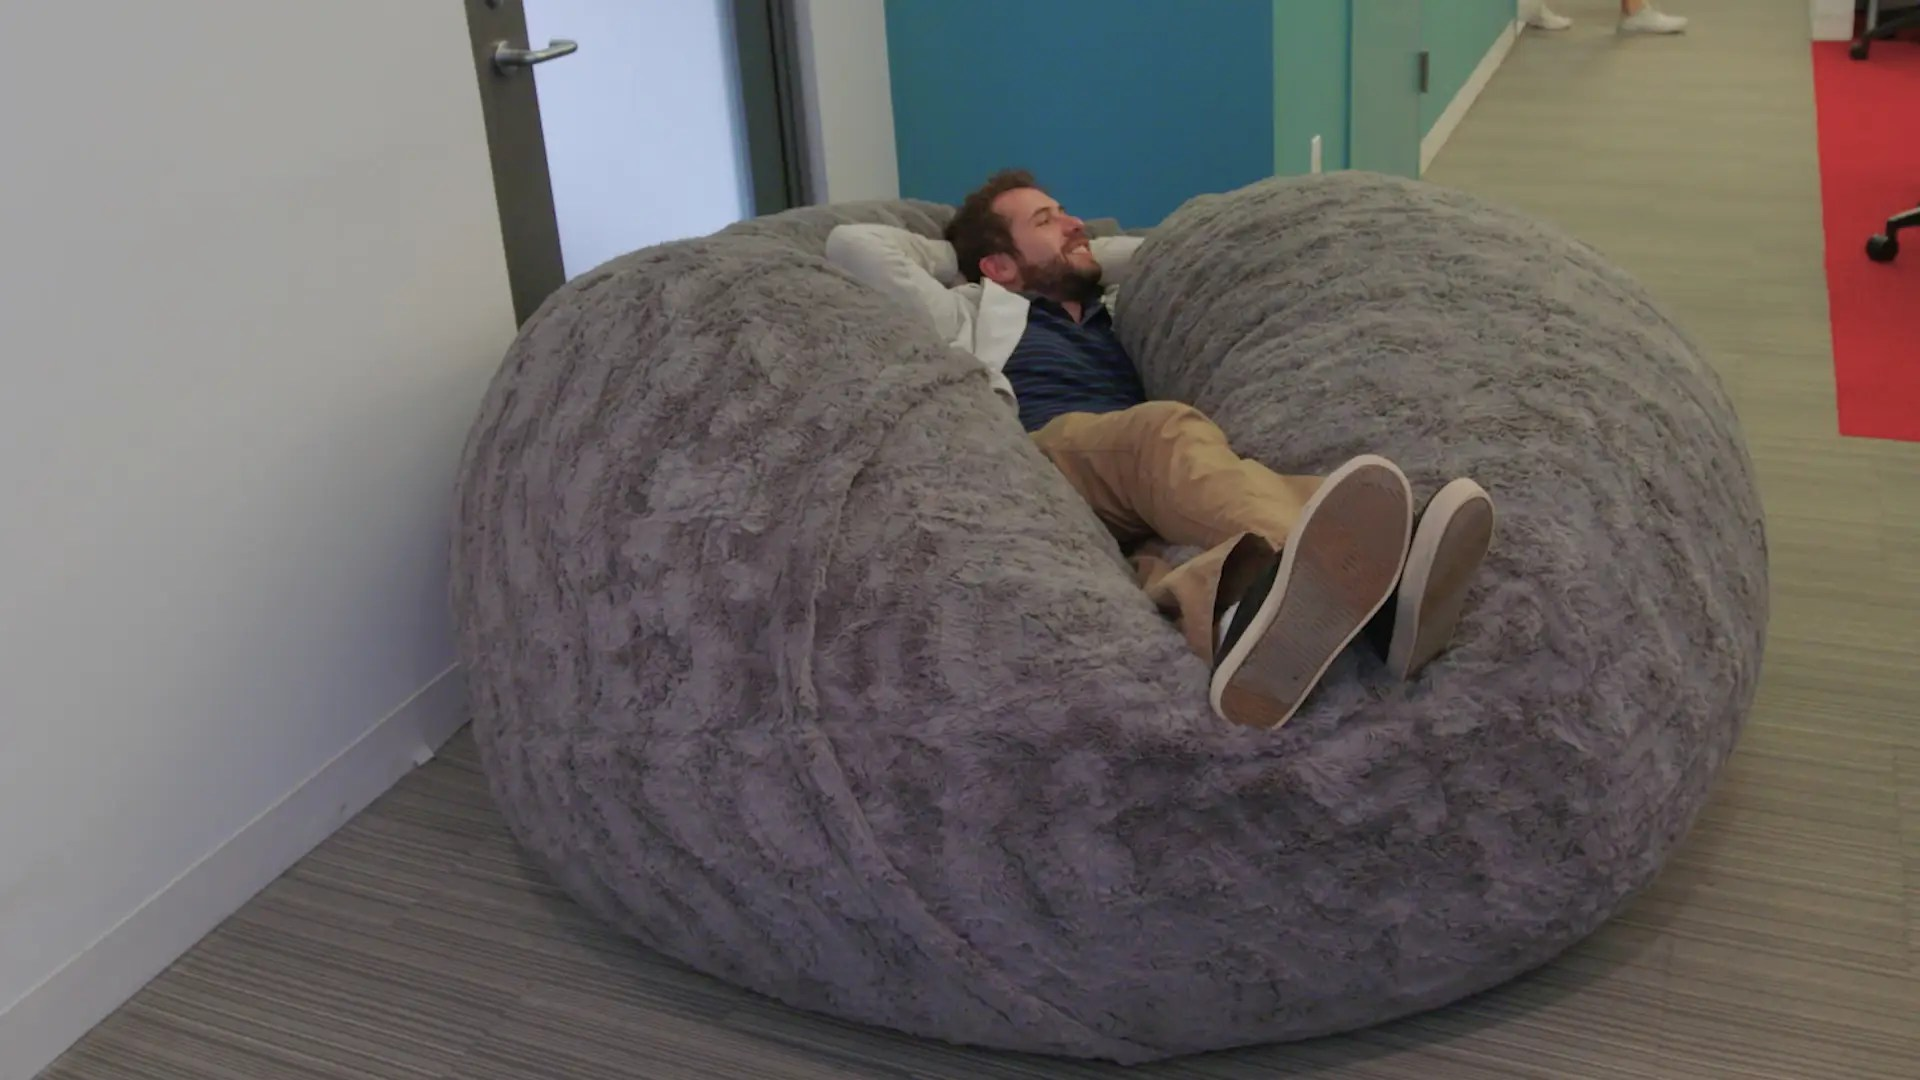 Love Sac Bean Bag Chair Internet Is Losing Its Mind Over Lovesac Pillow Chair